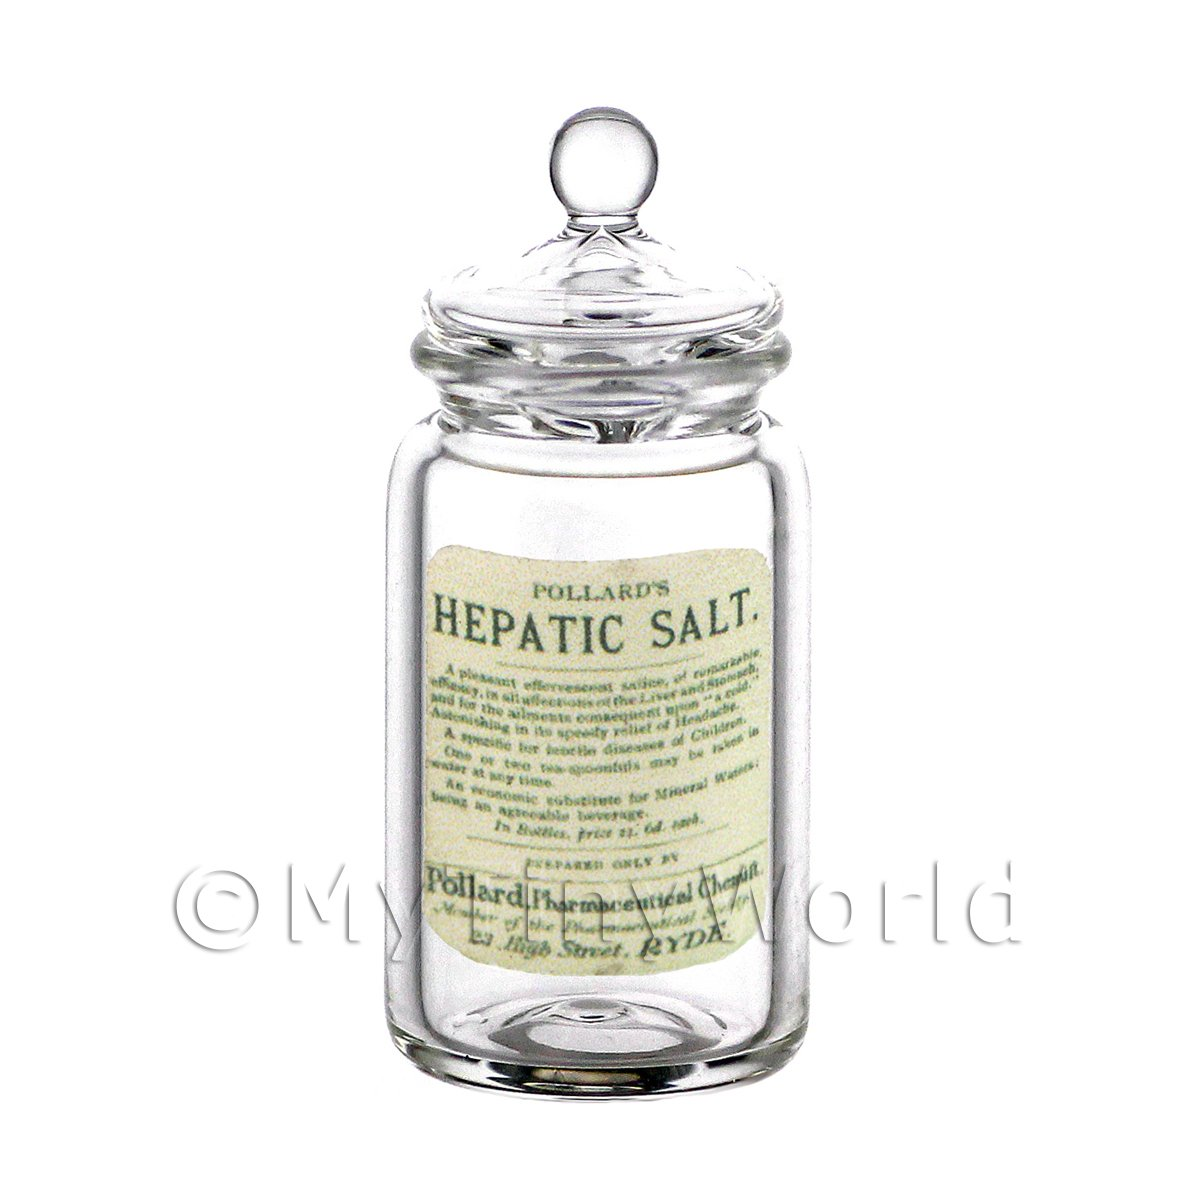 Dolls House Miniature Hepatic Salt Glass Apothecary Storage Jar